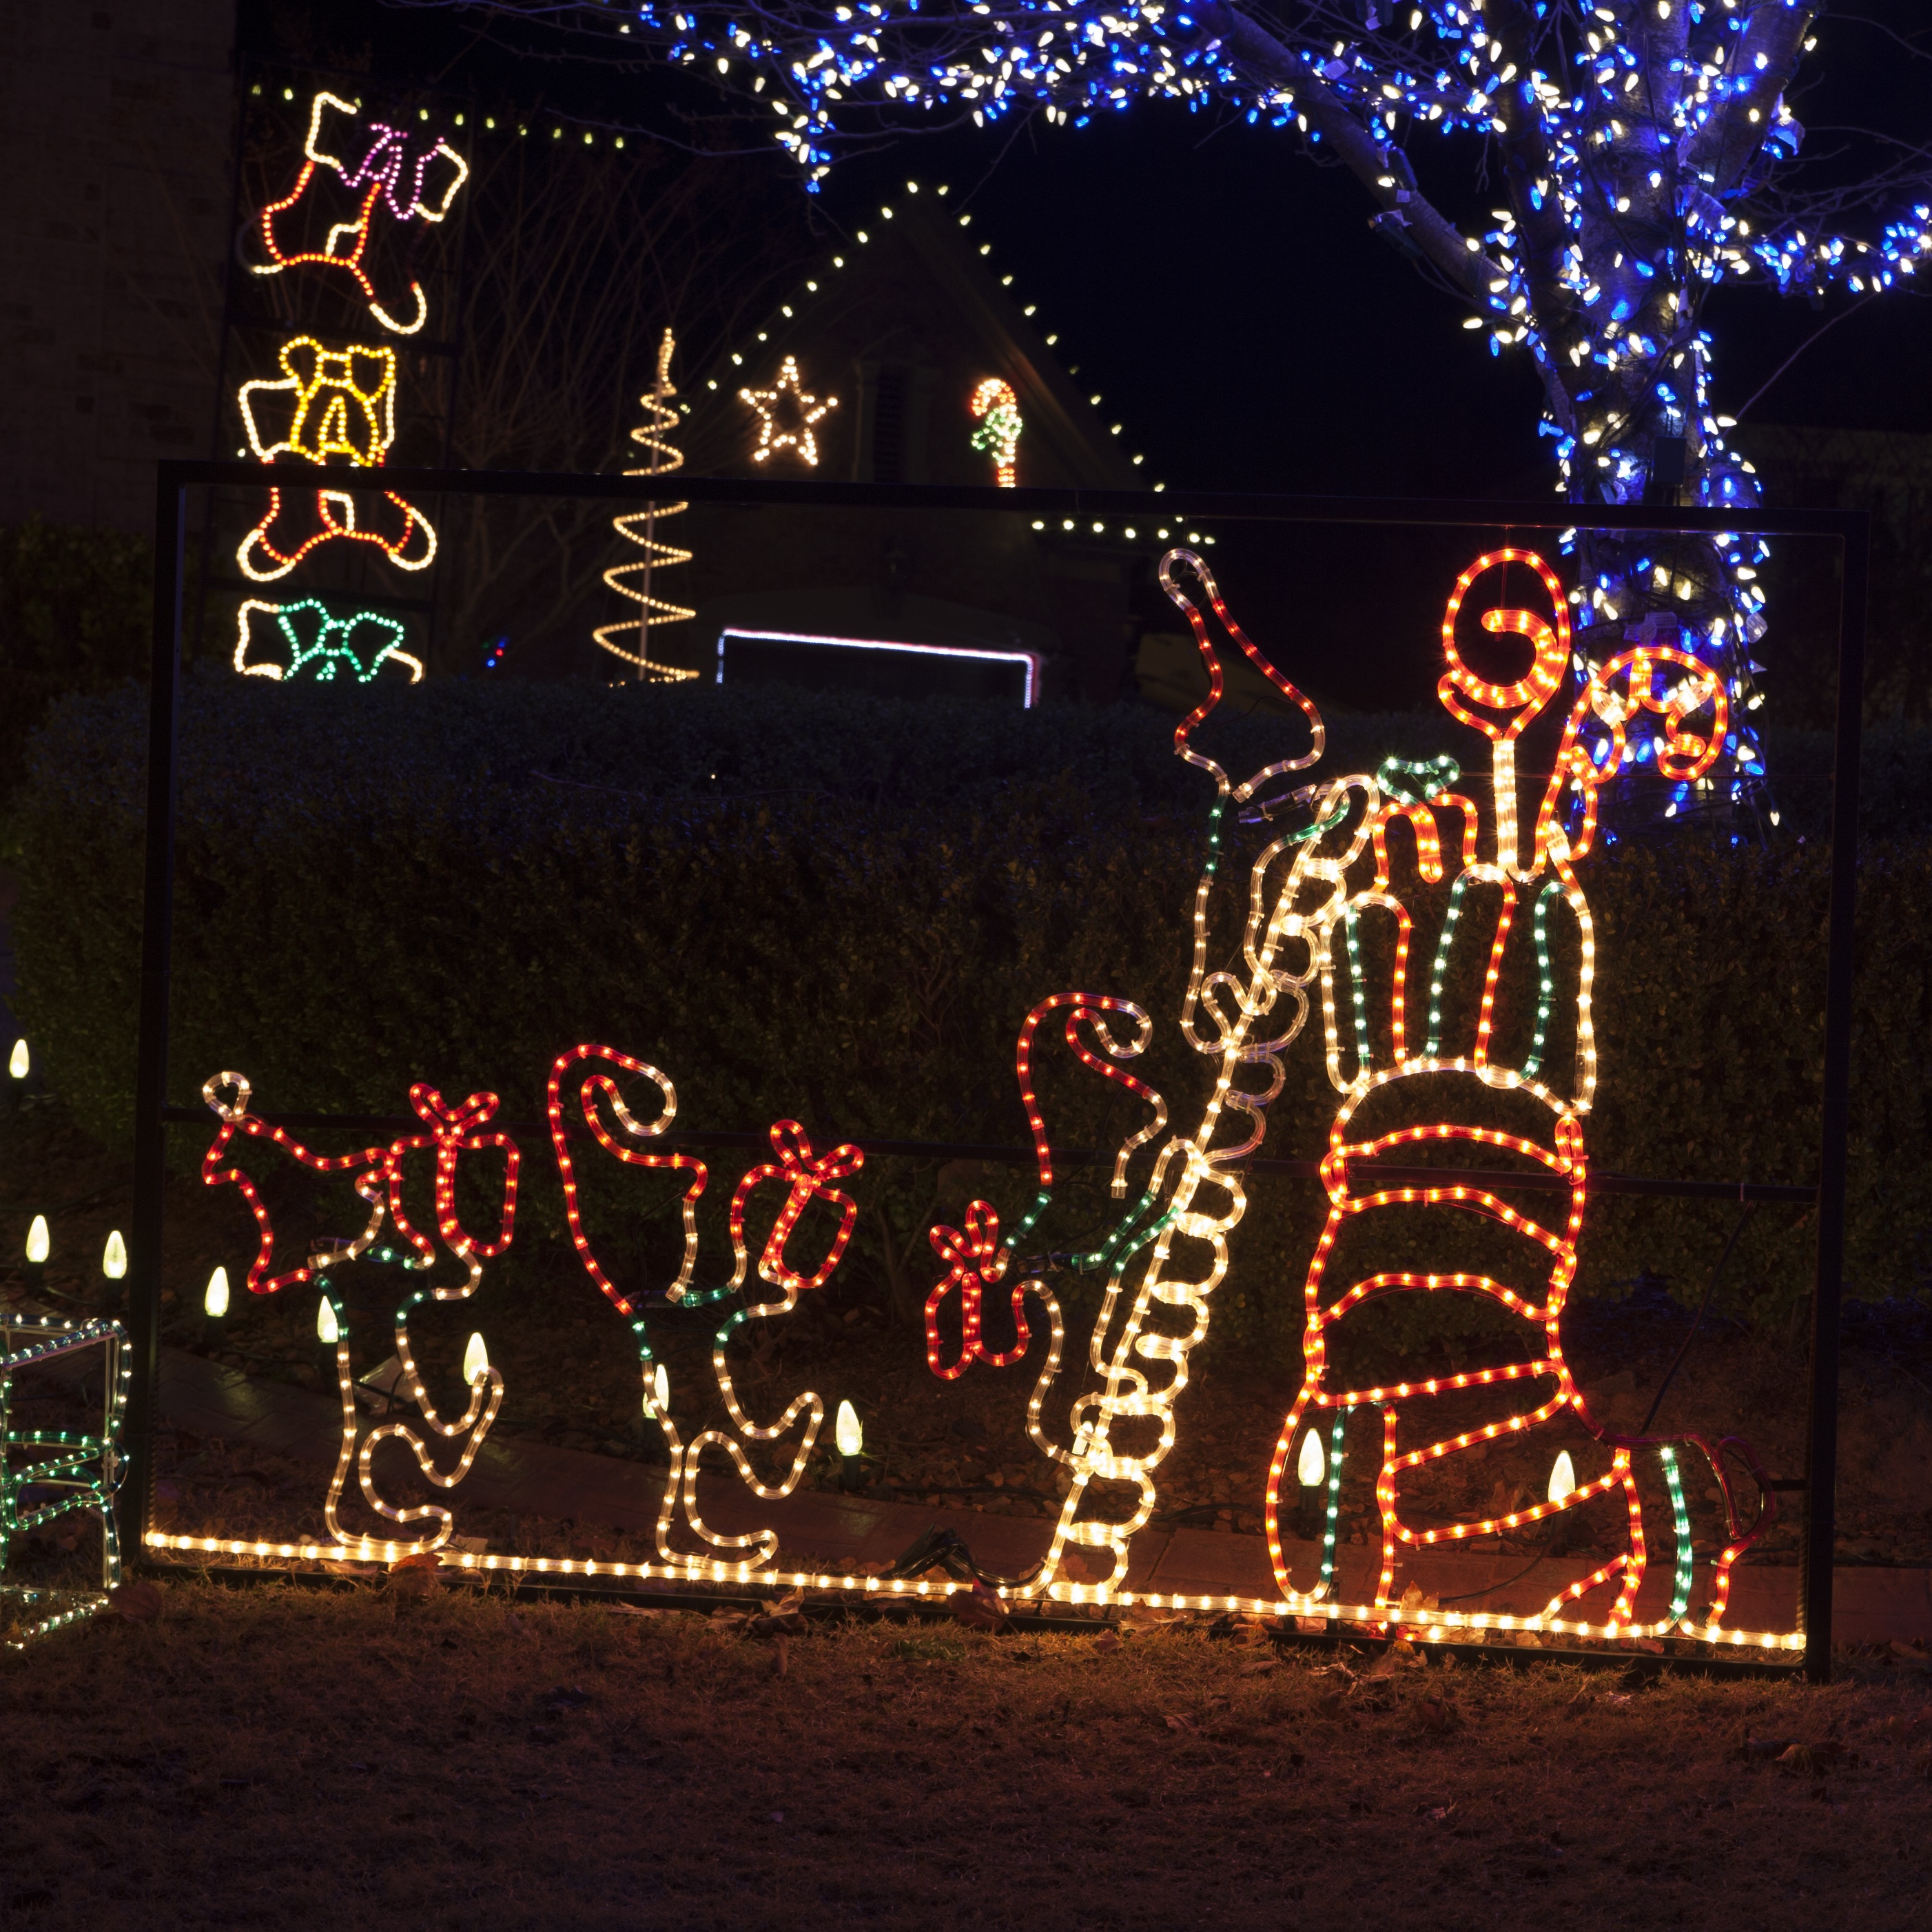 Awesome Animated Elf And Stocking Outdoor Christmas Decoration With Rope Lights Photo Gallery